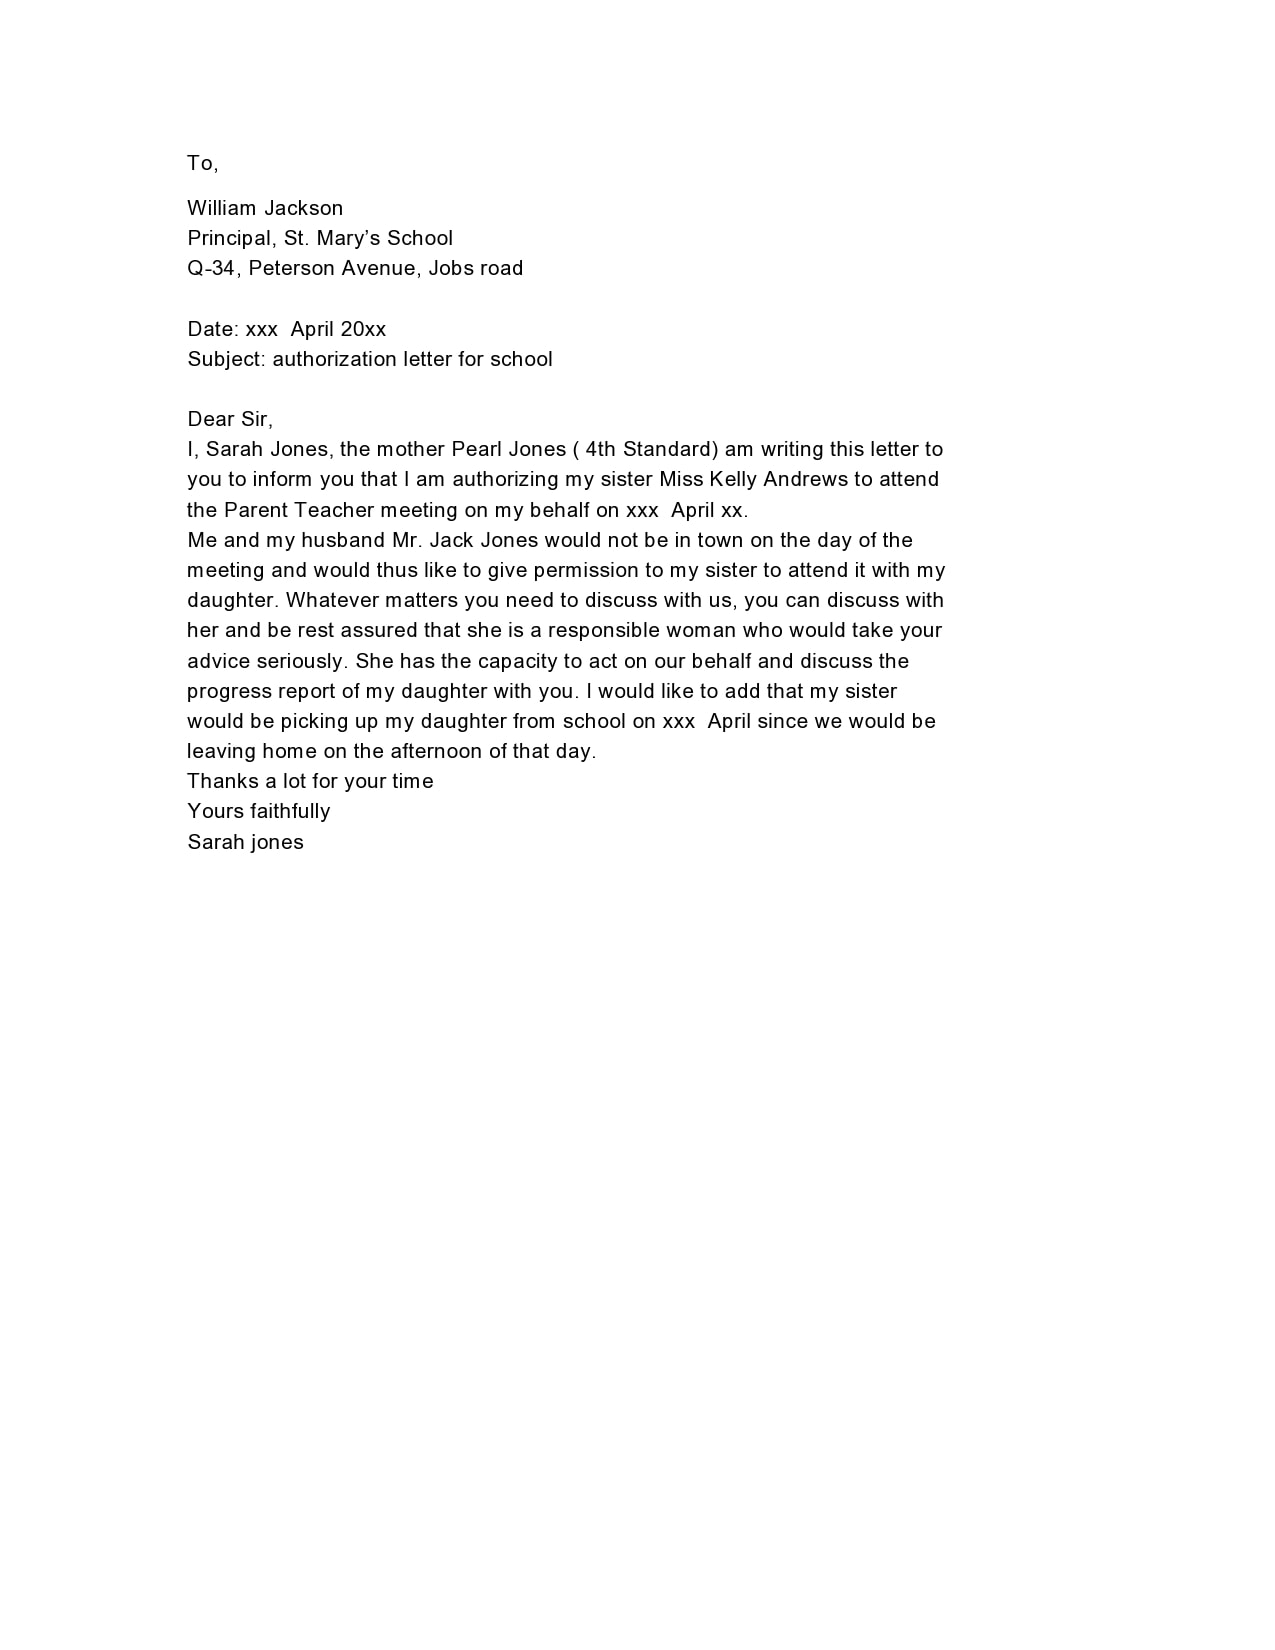 Sample Letter Of Authorization To Represent from templatearchive.com